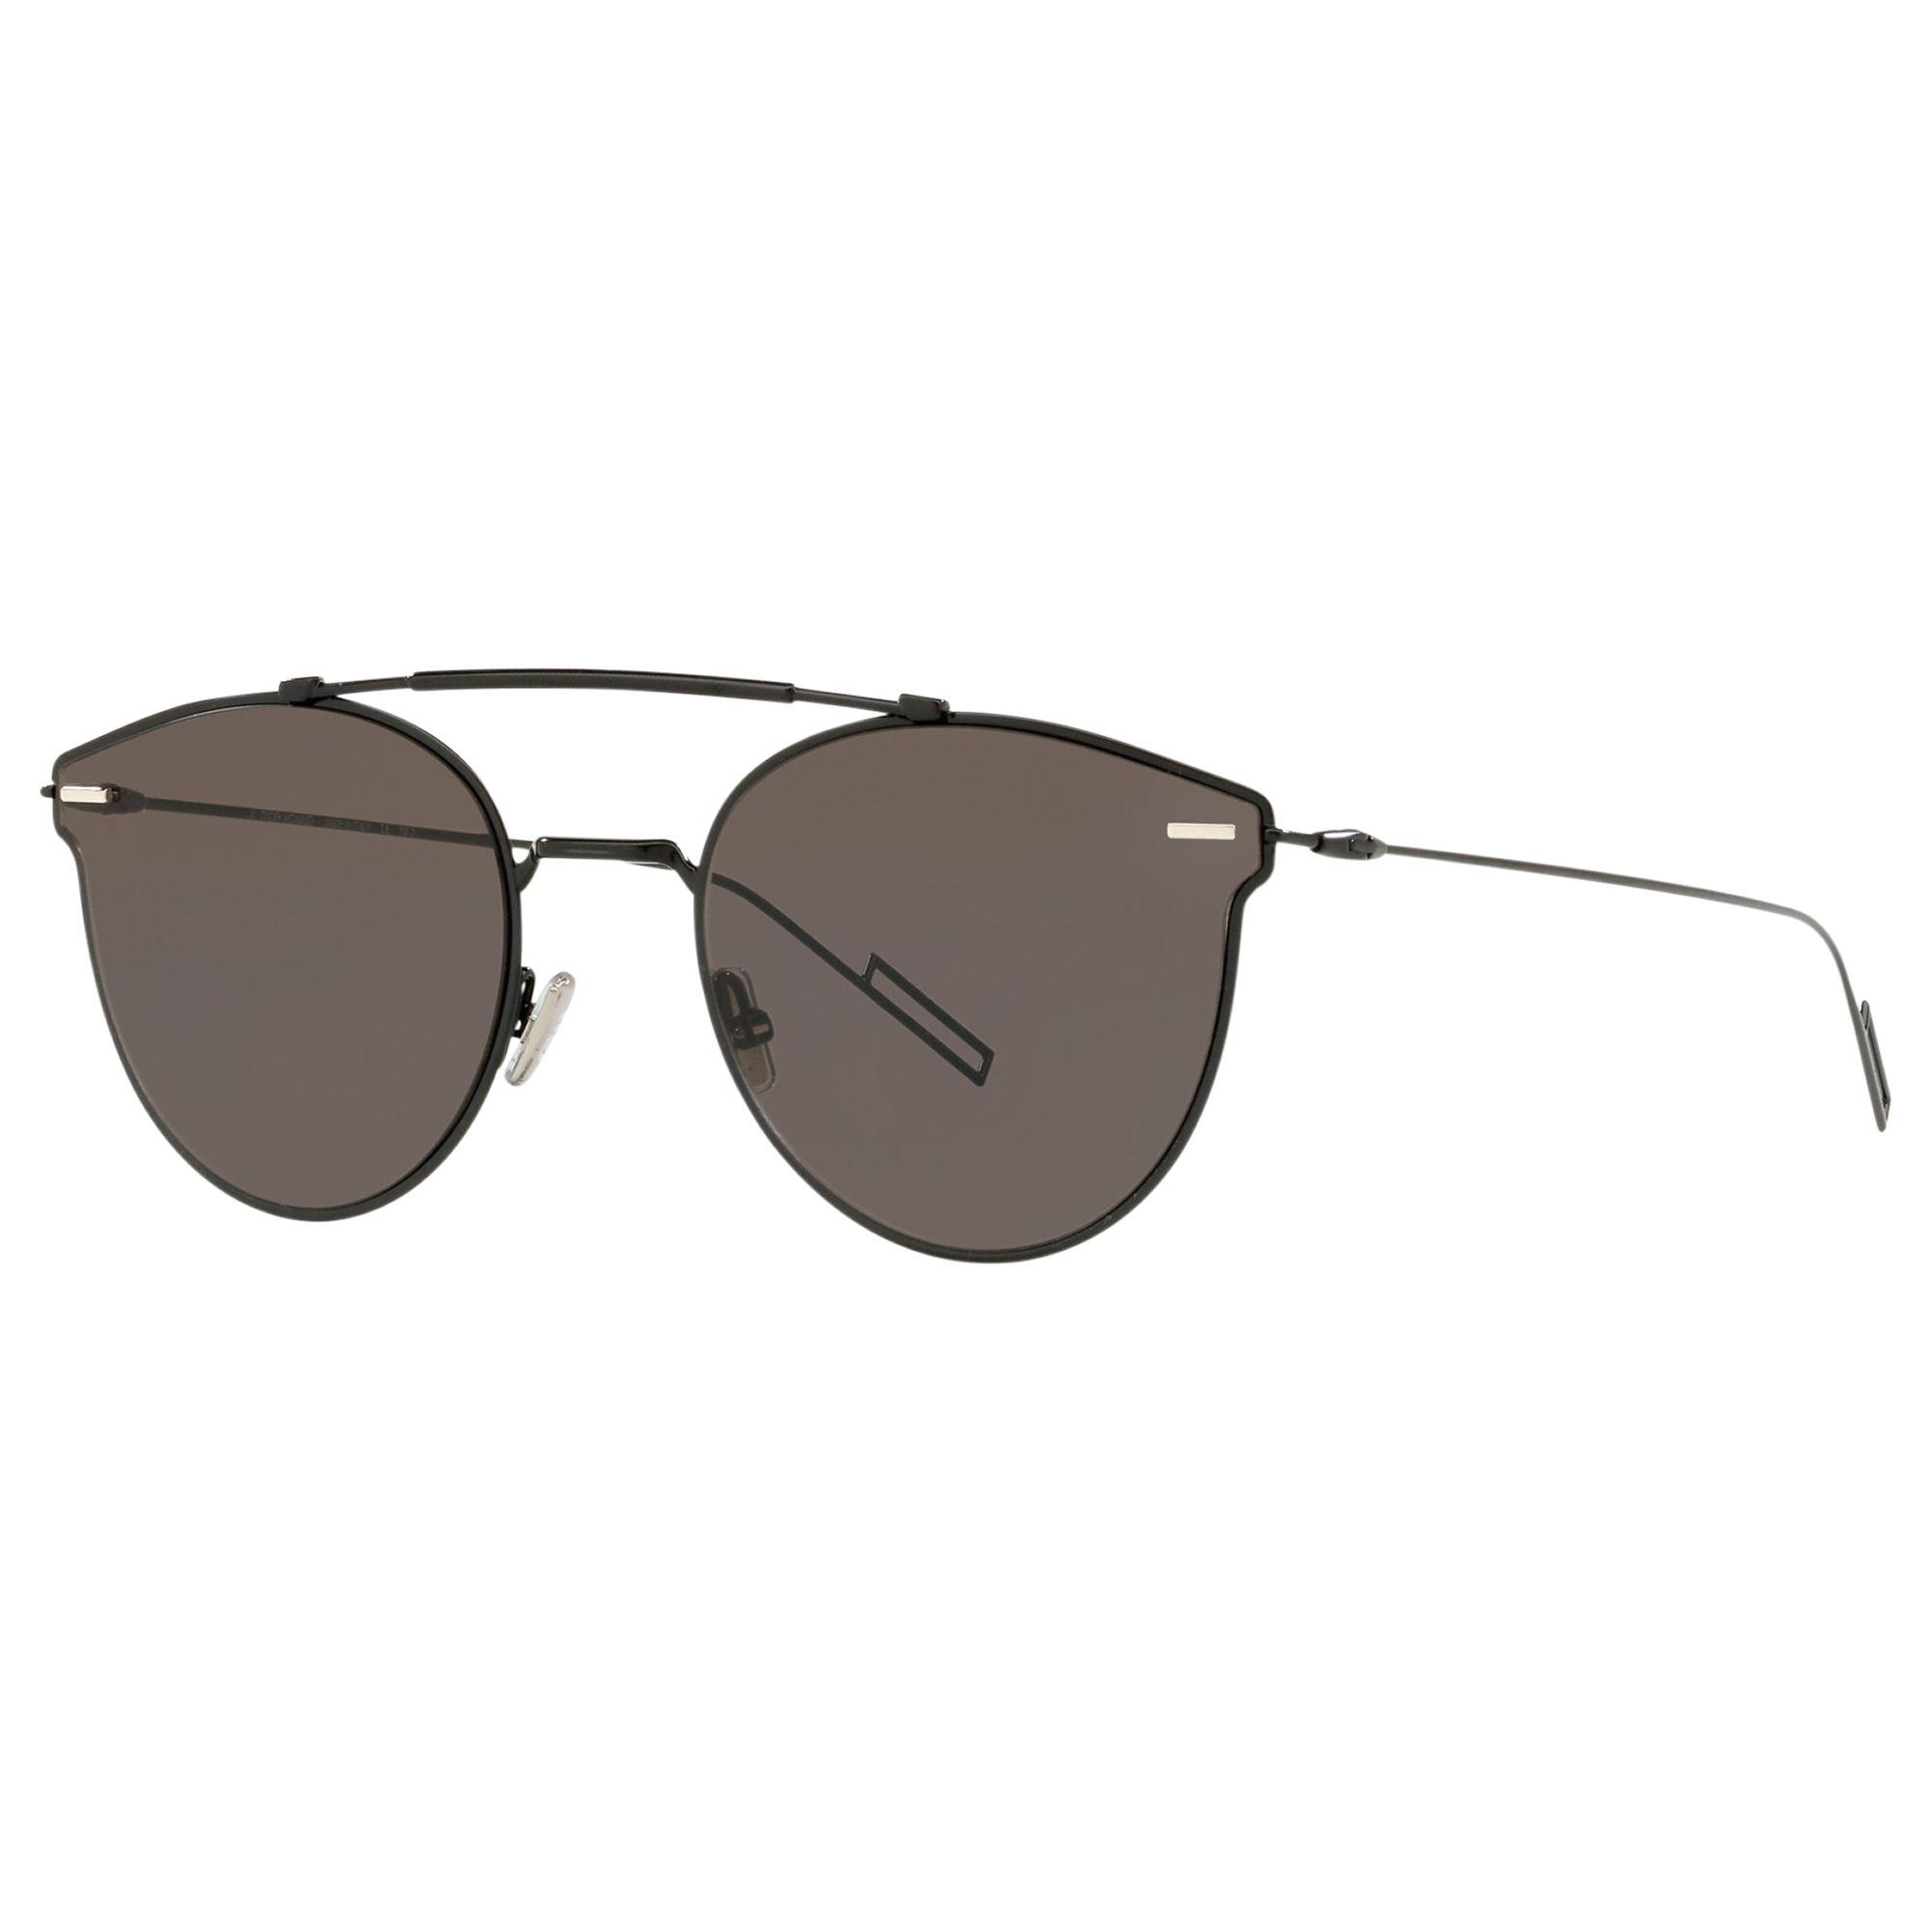 126d06e05e73 Dior. Men's Gray Pressure Oval Sunglasses. £350 From John Lewis and Partners